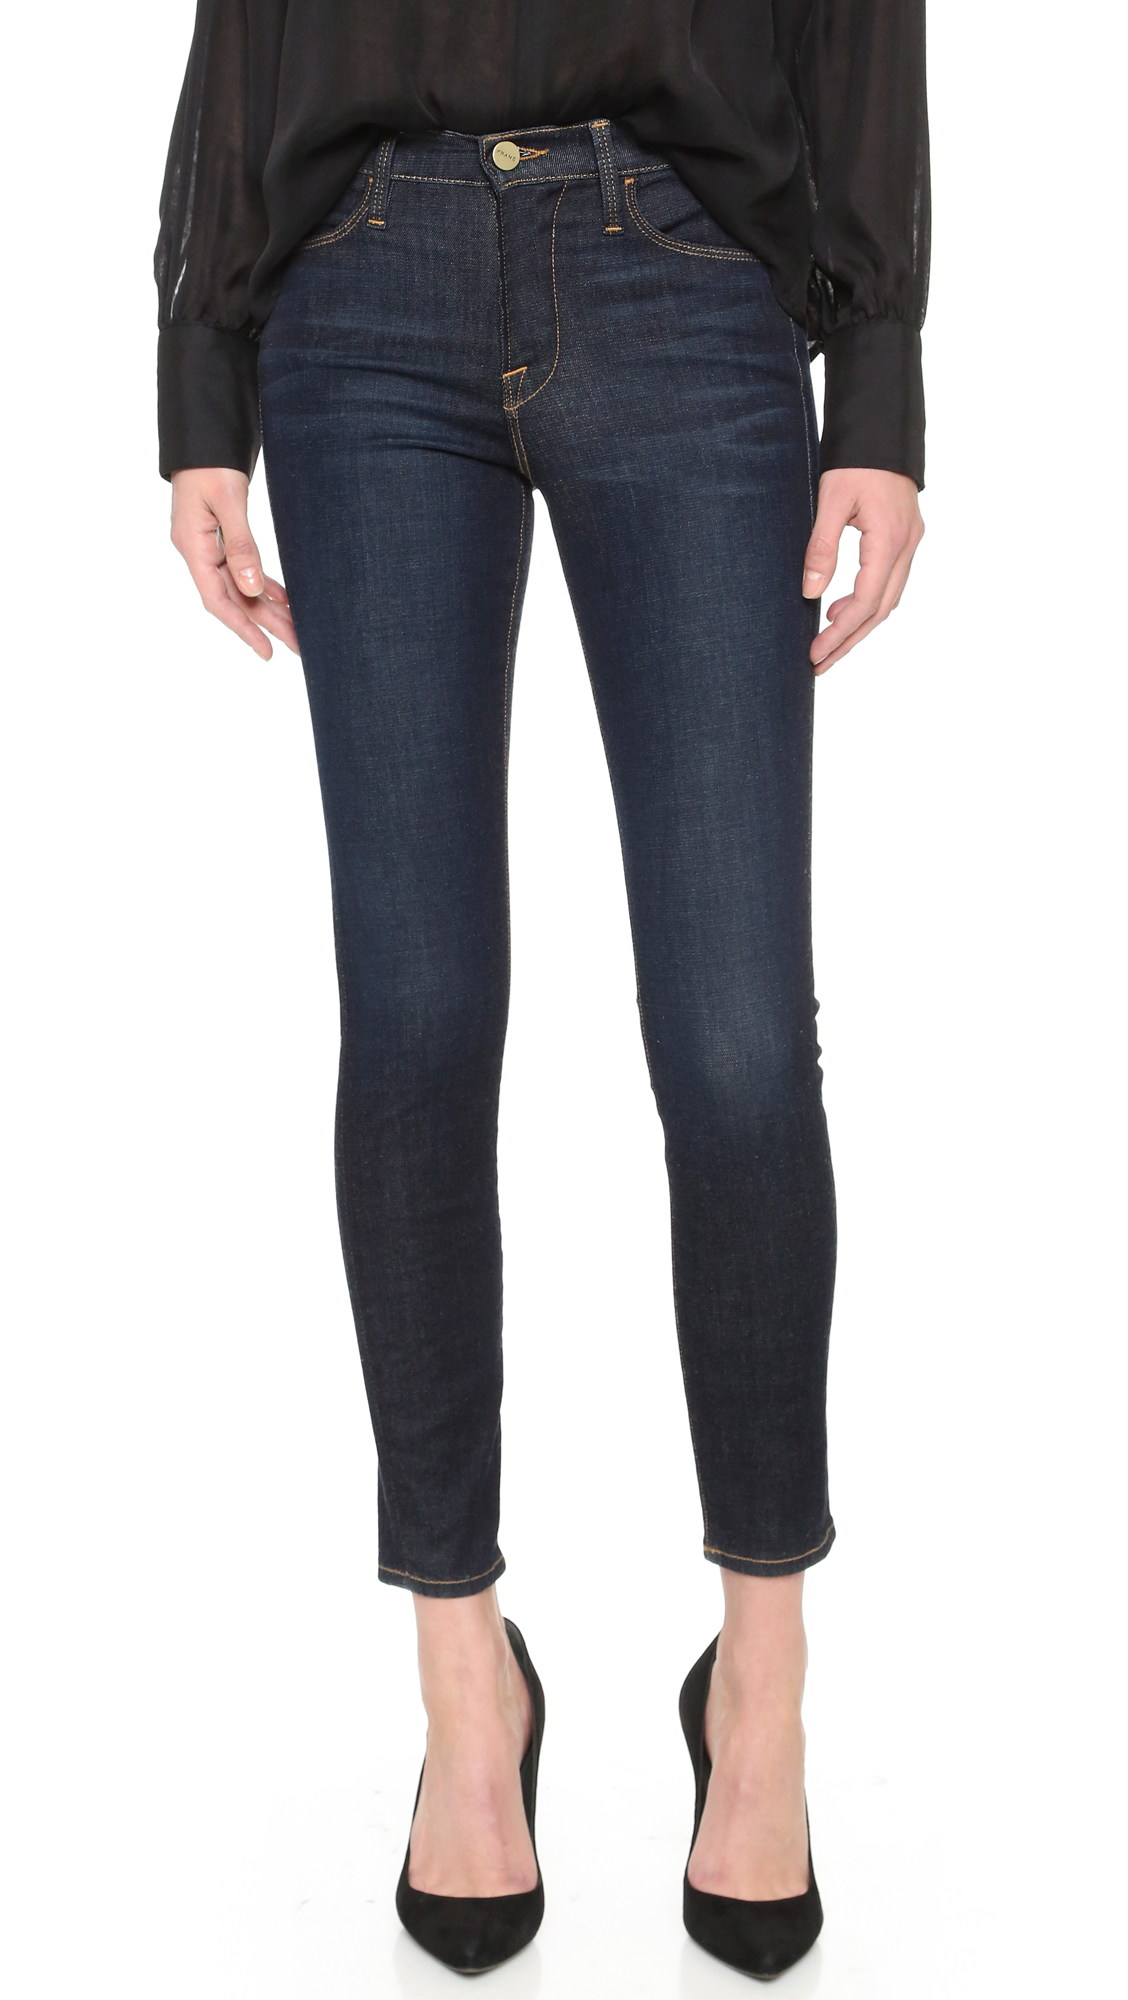 Le High skinny jeans Frame Denim Amazon Cheap Price Sale For Cheap sylW96IvIm